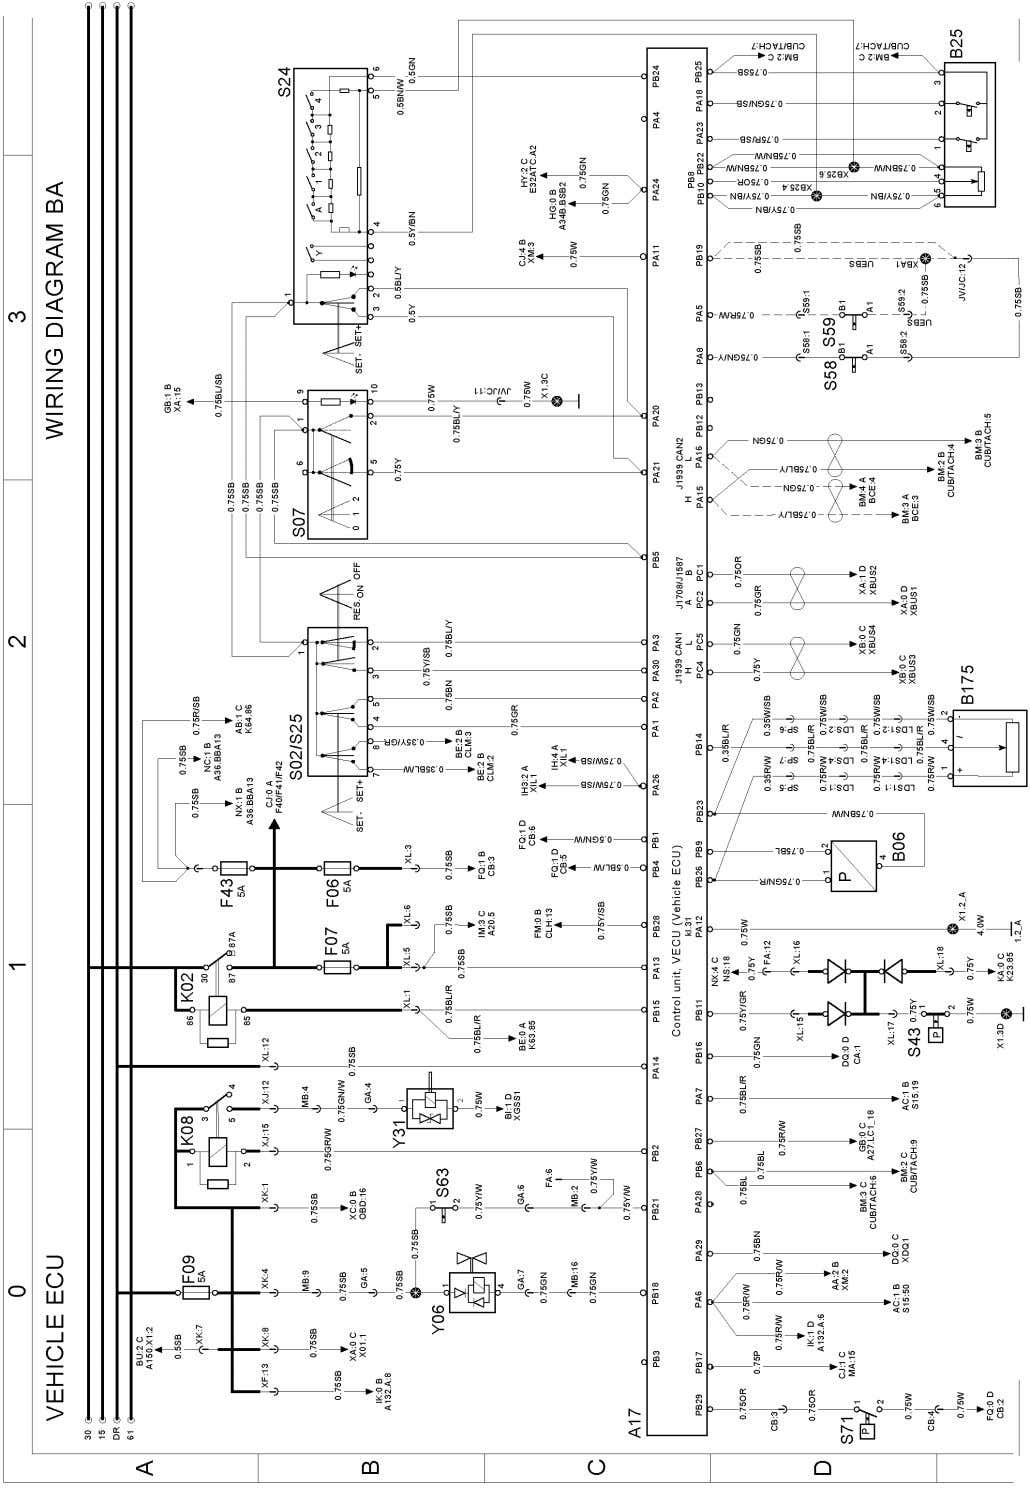 T3075969 Page 12 (298) Wiring diagram